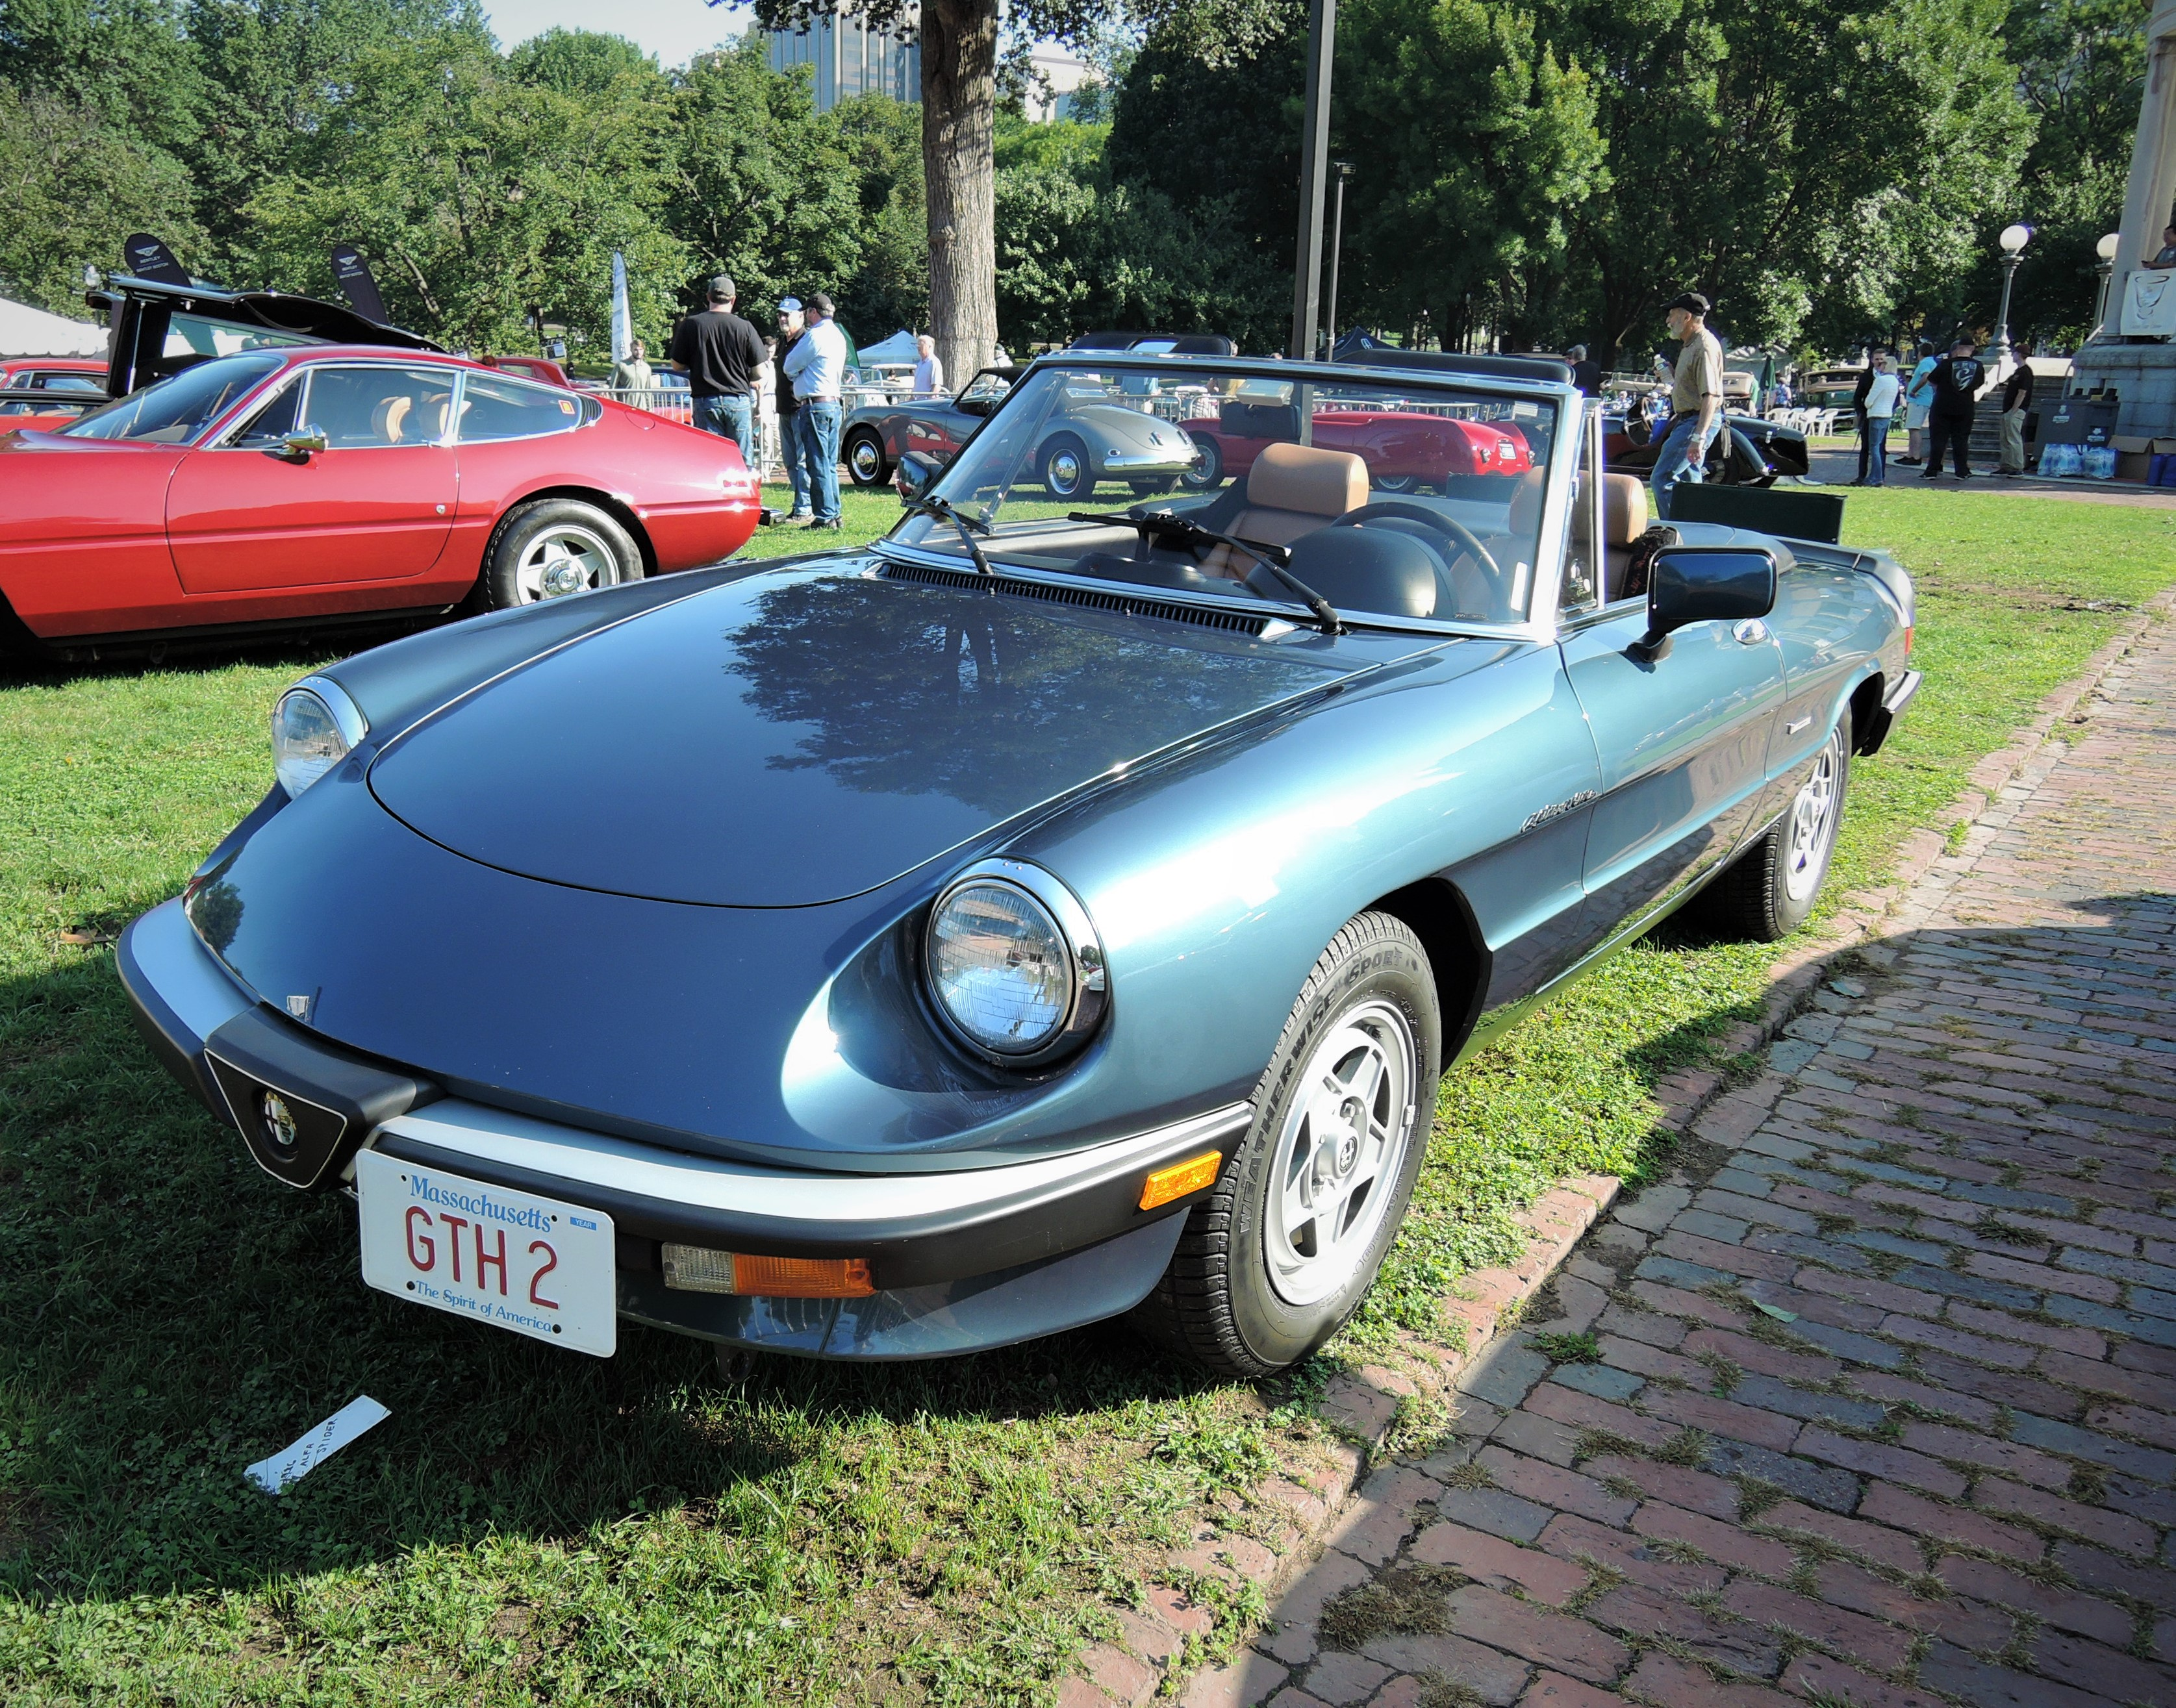 blu 1986 Alfa Romeo Spider Veloce - The Boston Cup 2017